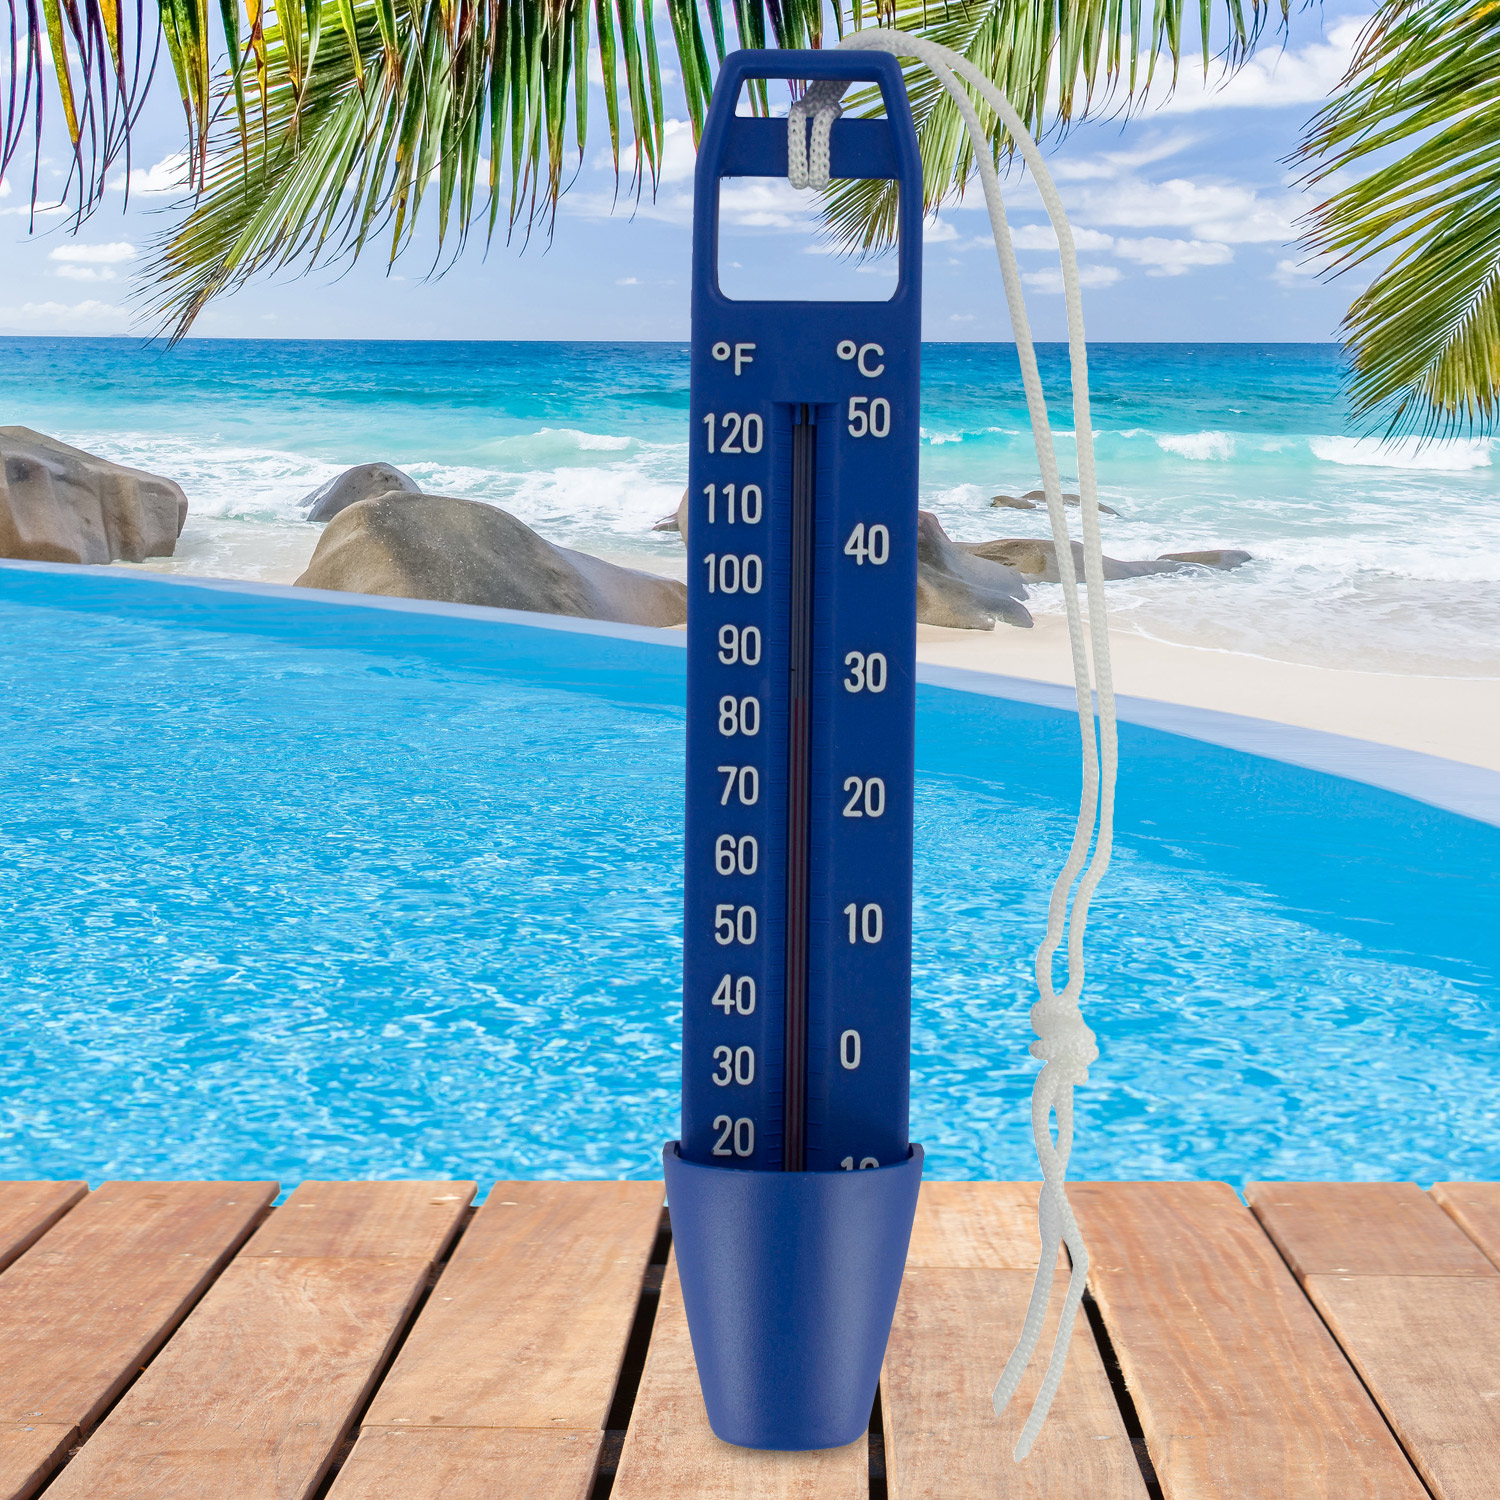 Xxl 25cm pool wasser thermometer poolthermometer for Schwimmbadthermometer